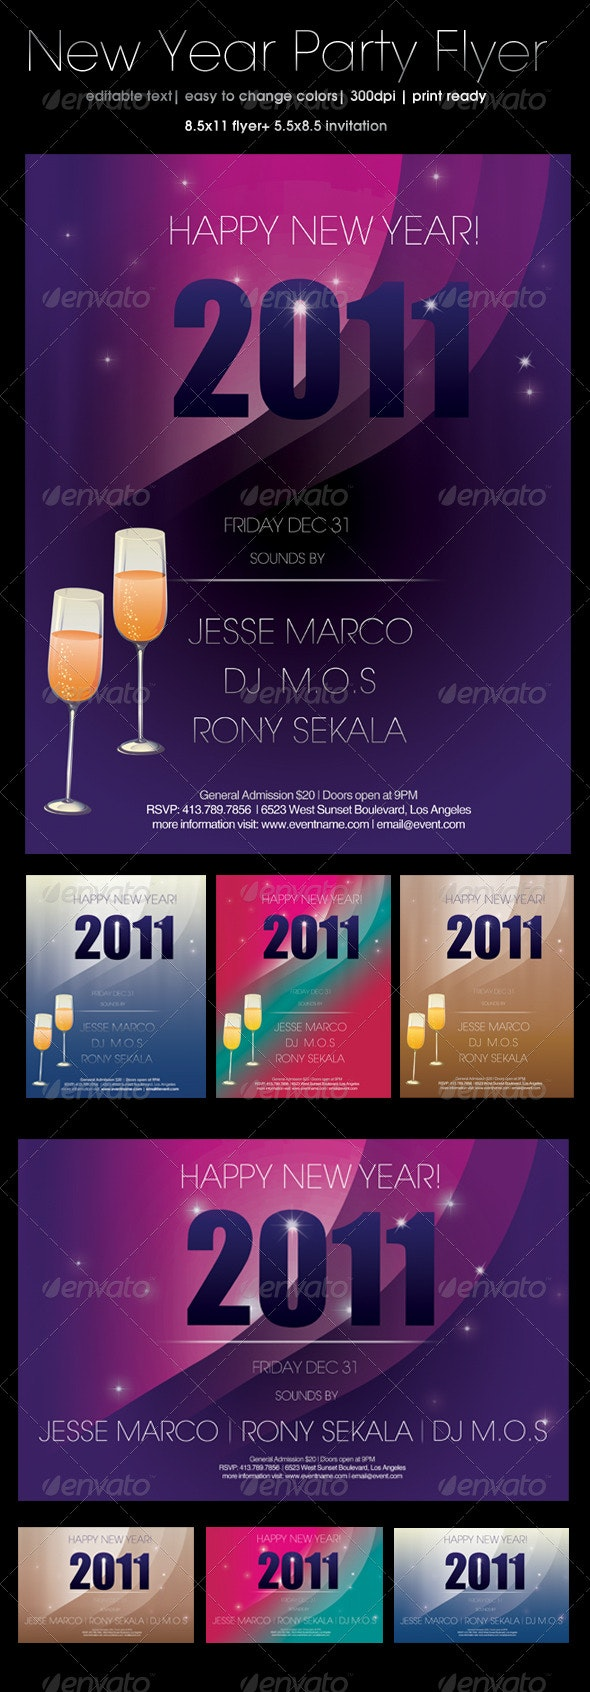 New Year's Party Flyer and Invitation - Holiday Greeting Cards